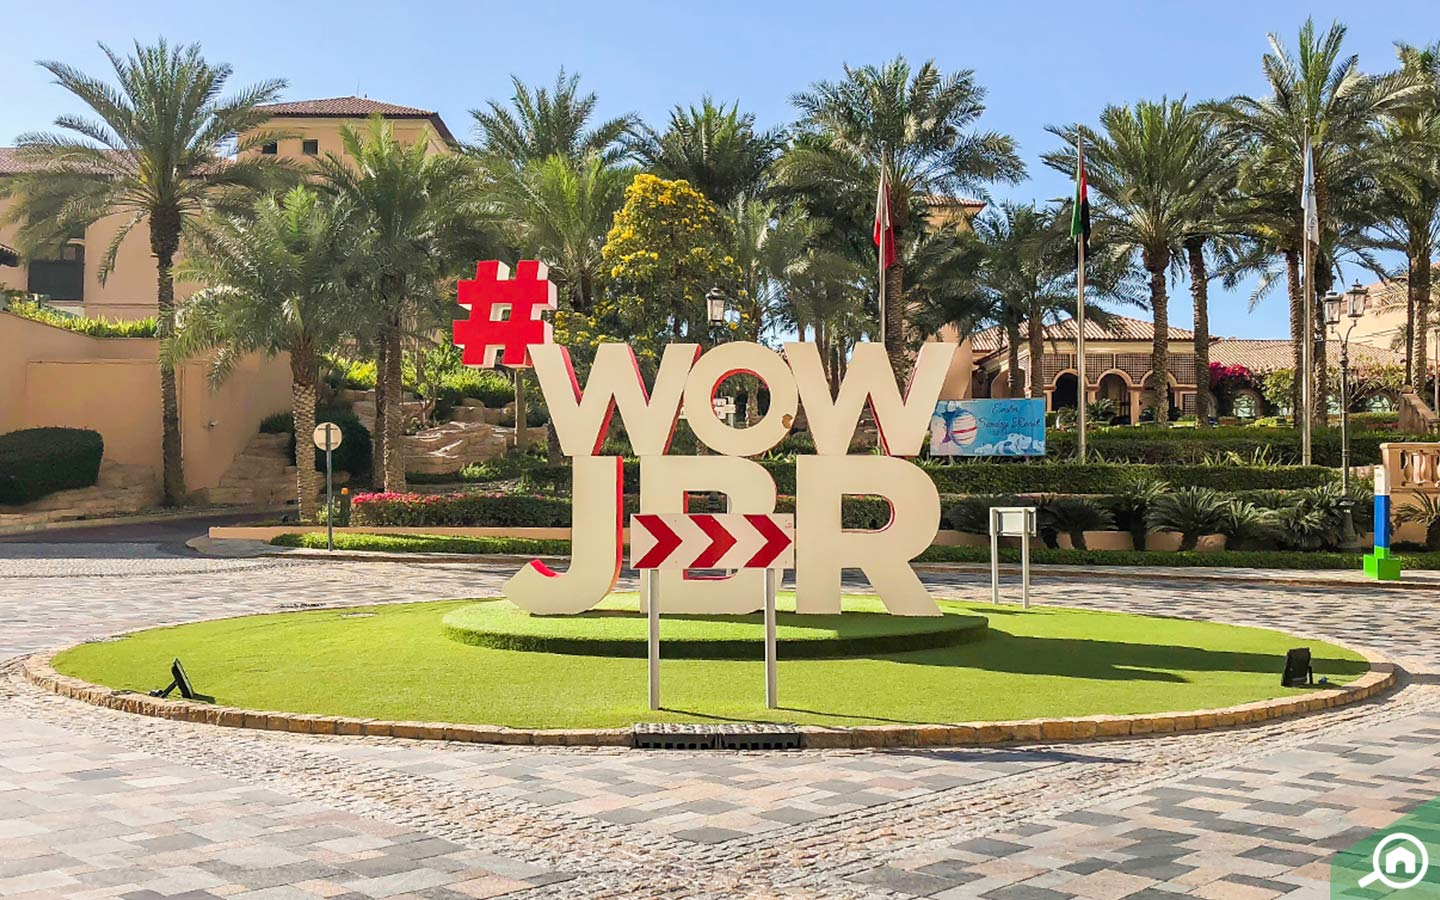 Insta-friendly places in JBR